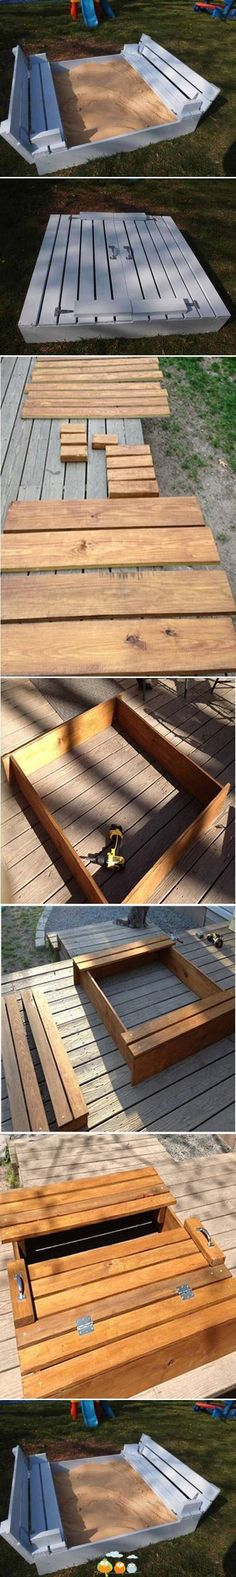 wood pallet sandbox, with bench seats that unfold to cover the sandbox.